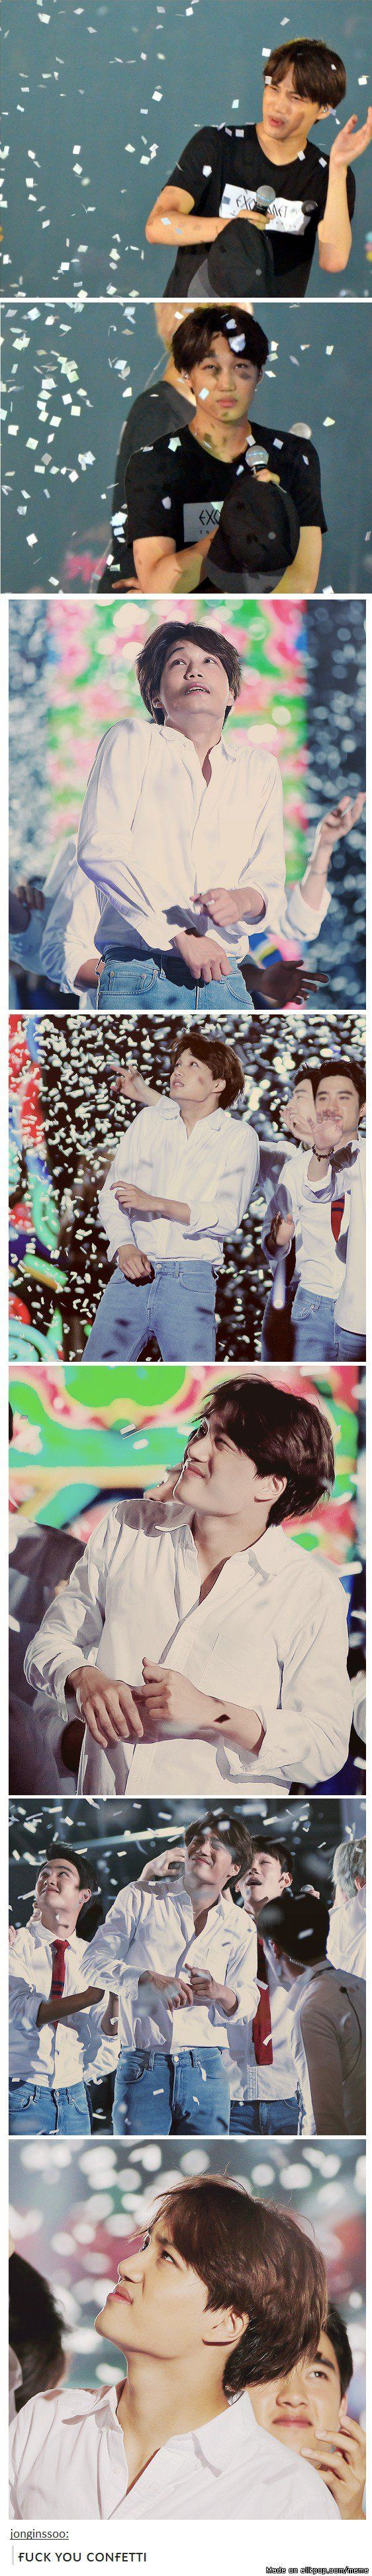 Tbh I hope u never stop being afraid of confetti cause it's adorable ok?